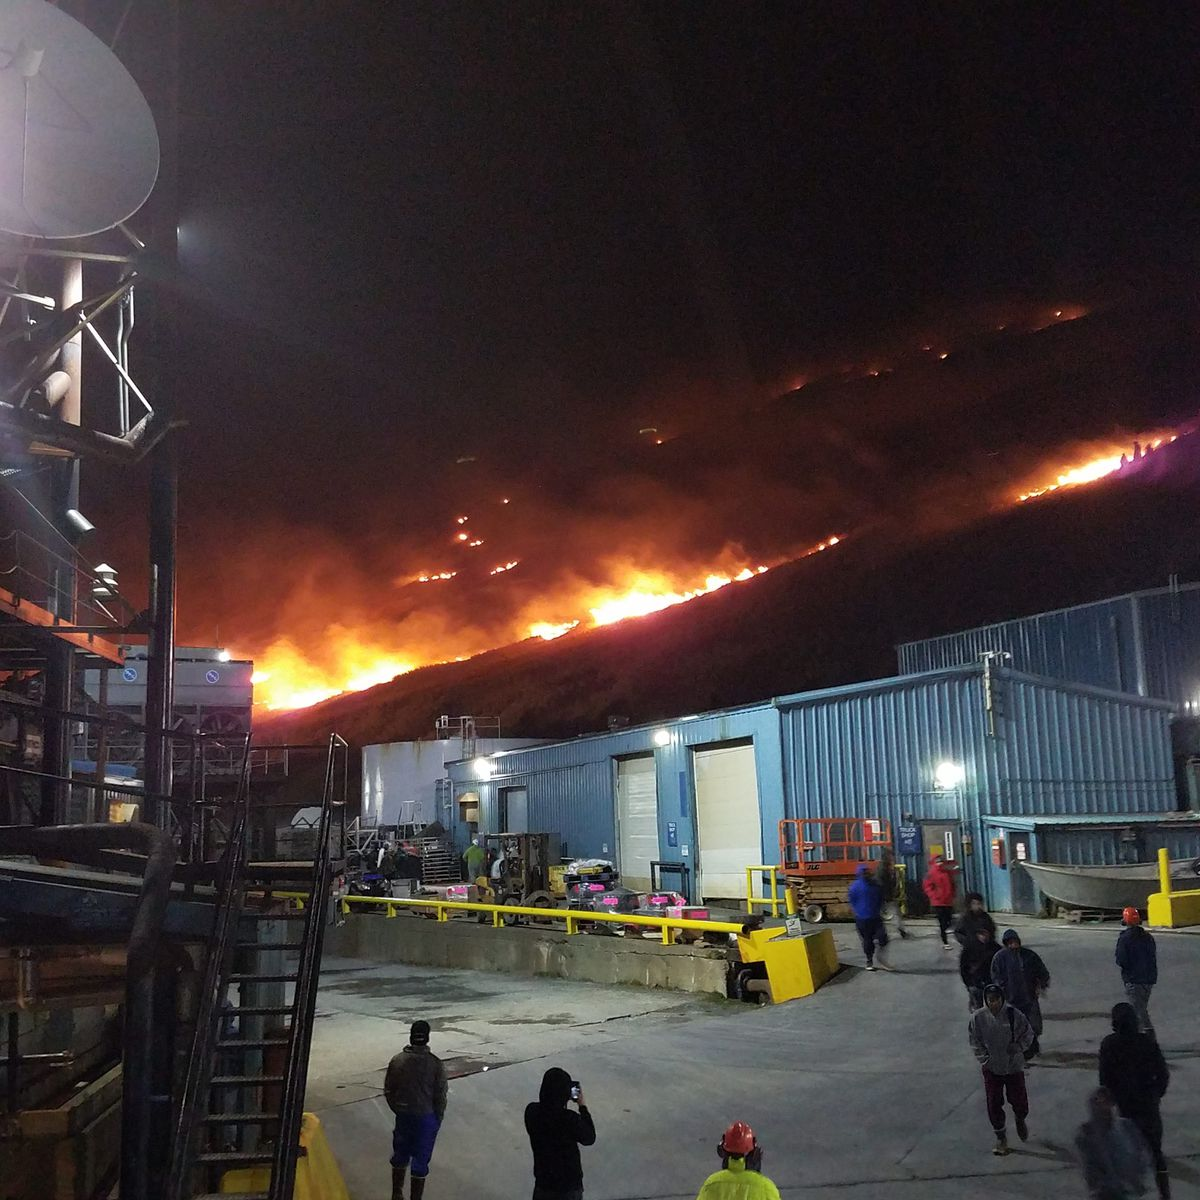 A fire near the Trident Seafoods plant in Akutan burned up the hillside on Sunday, Feb. 18, 2018. (Photo by Bill Newberry)